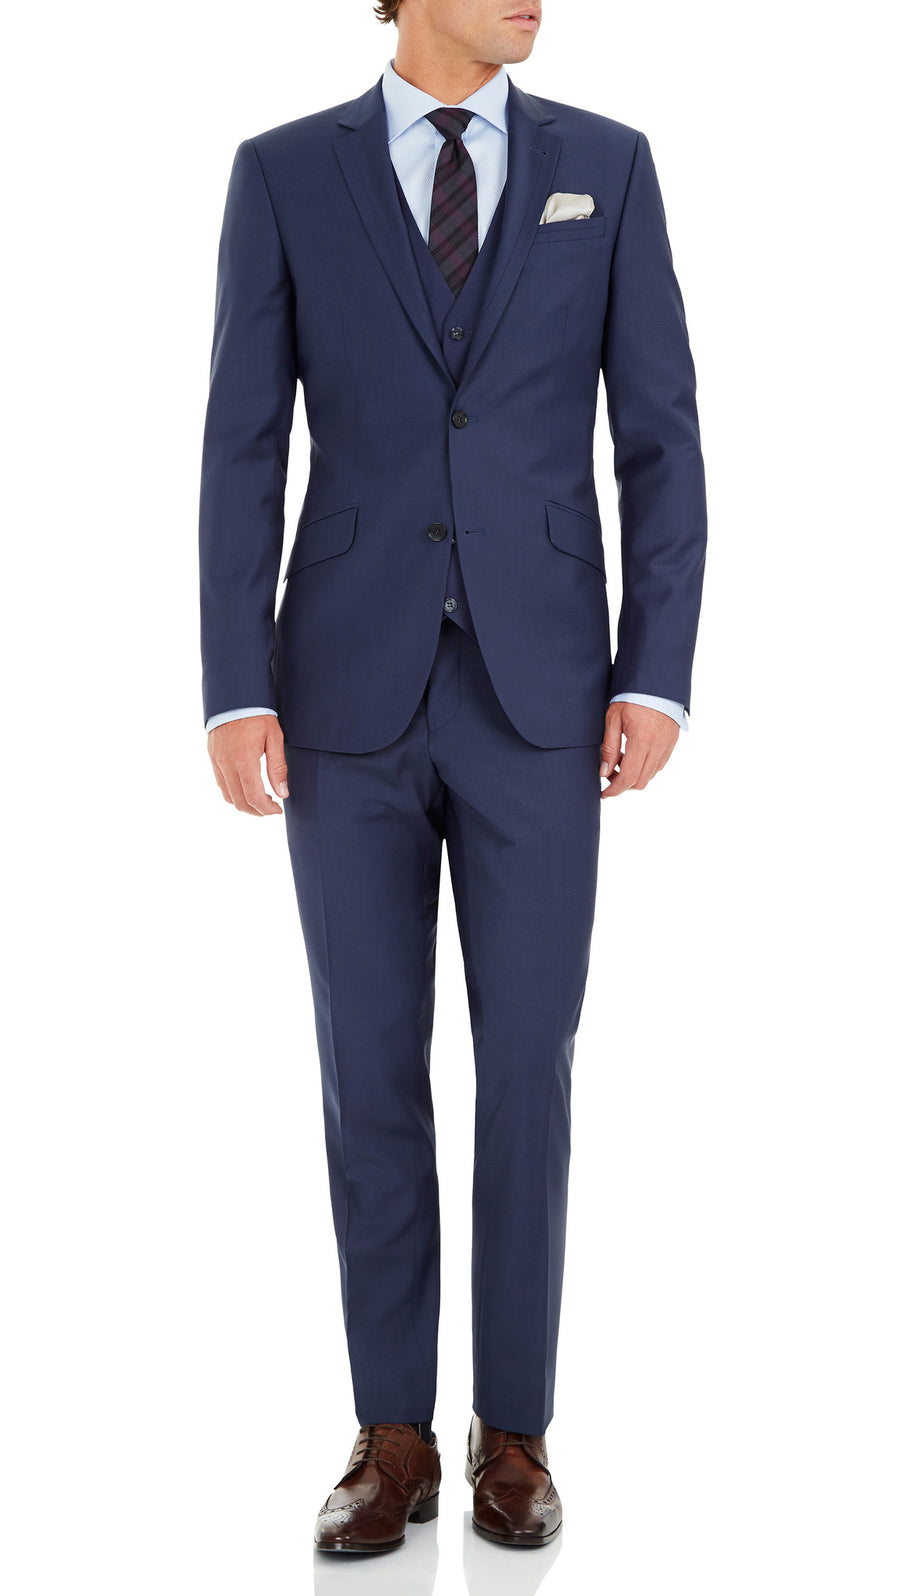 Blackjacket Skinny Fit Suit in Blue - Ron Bennett Menswear  - 2